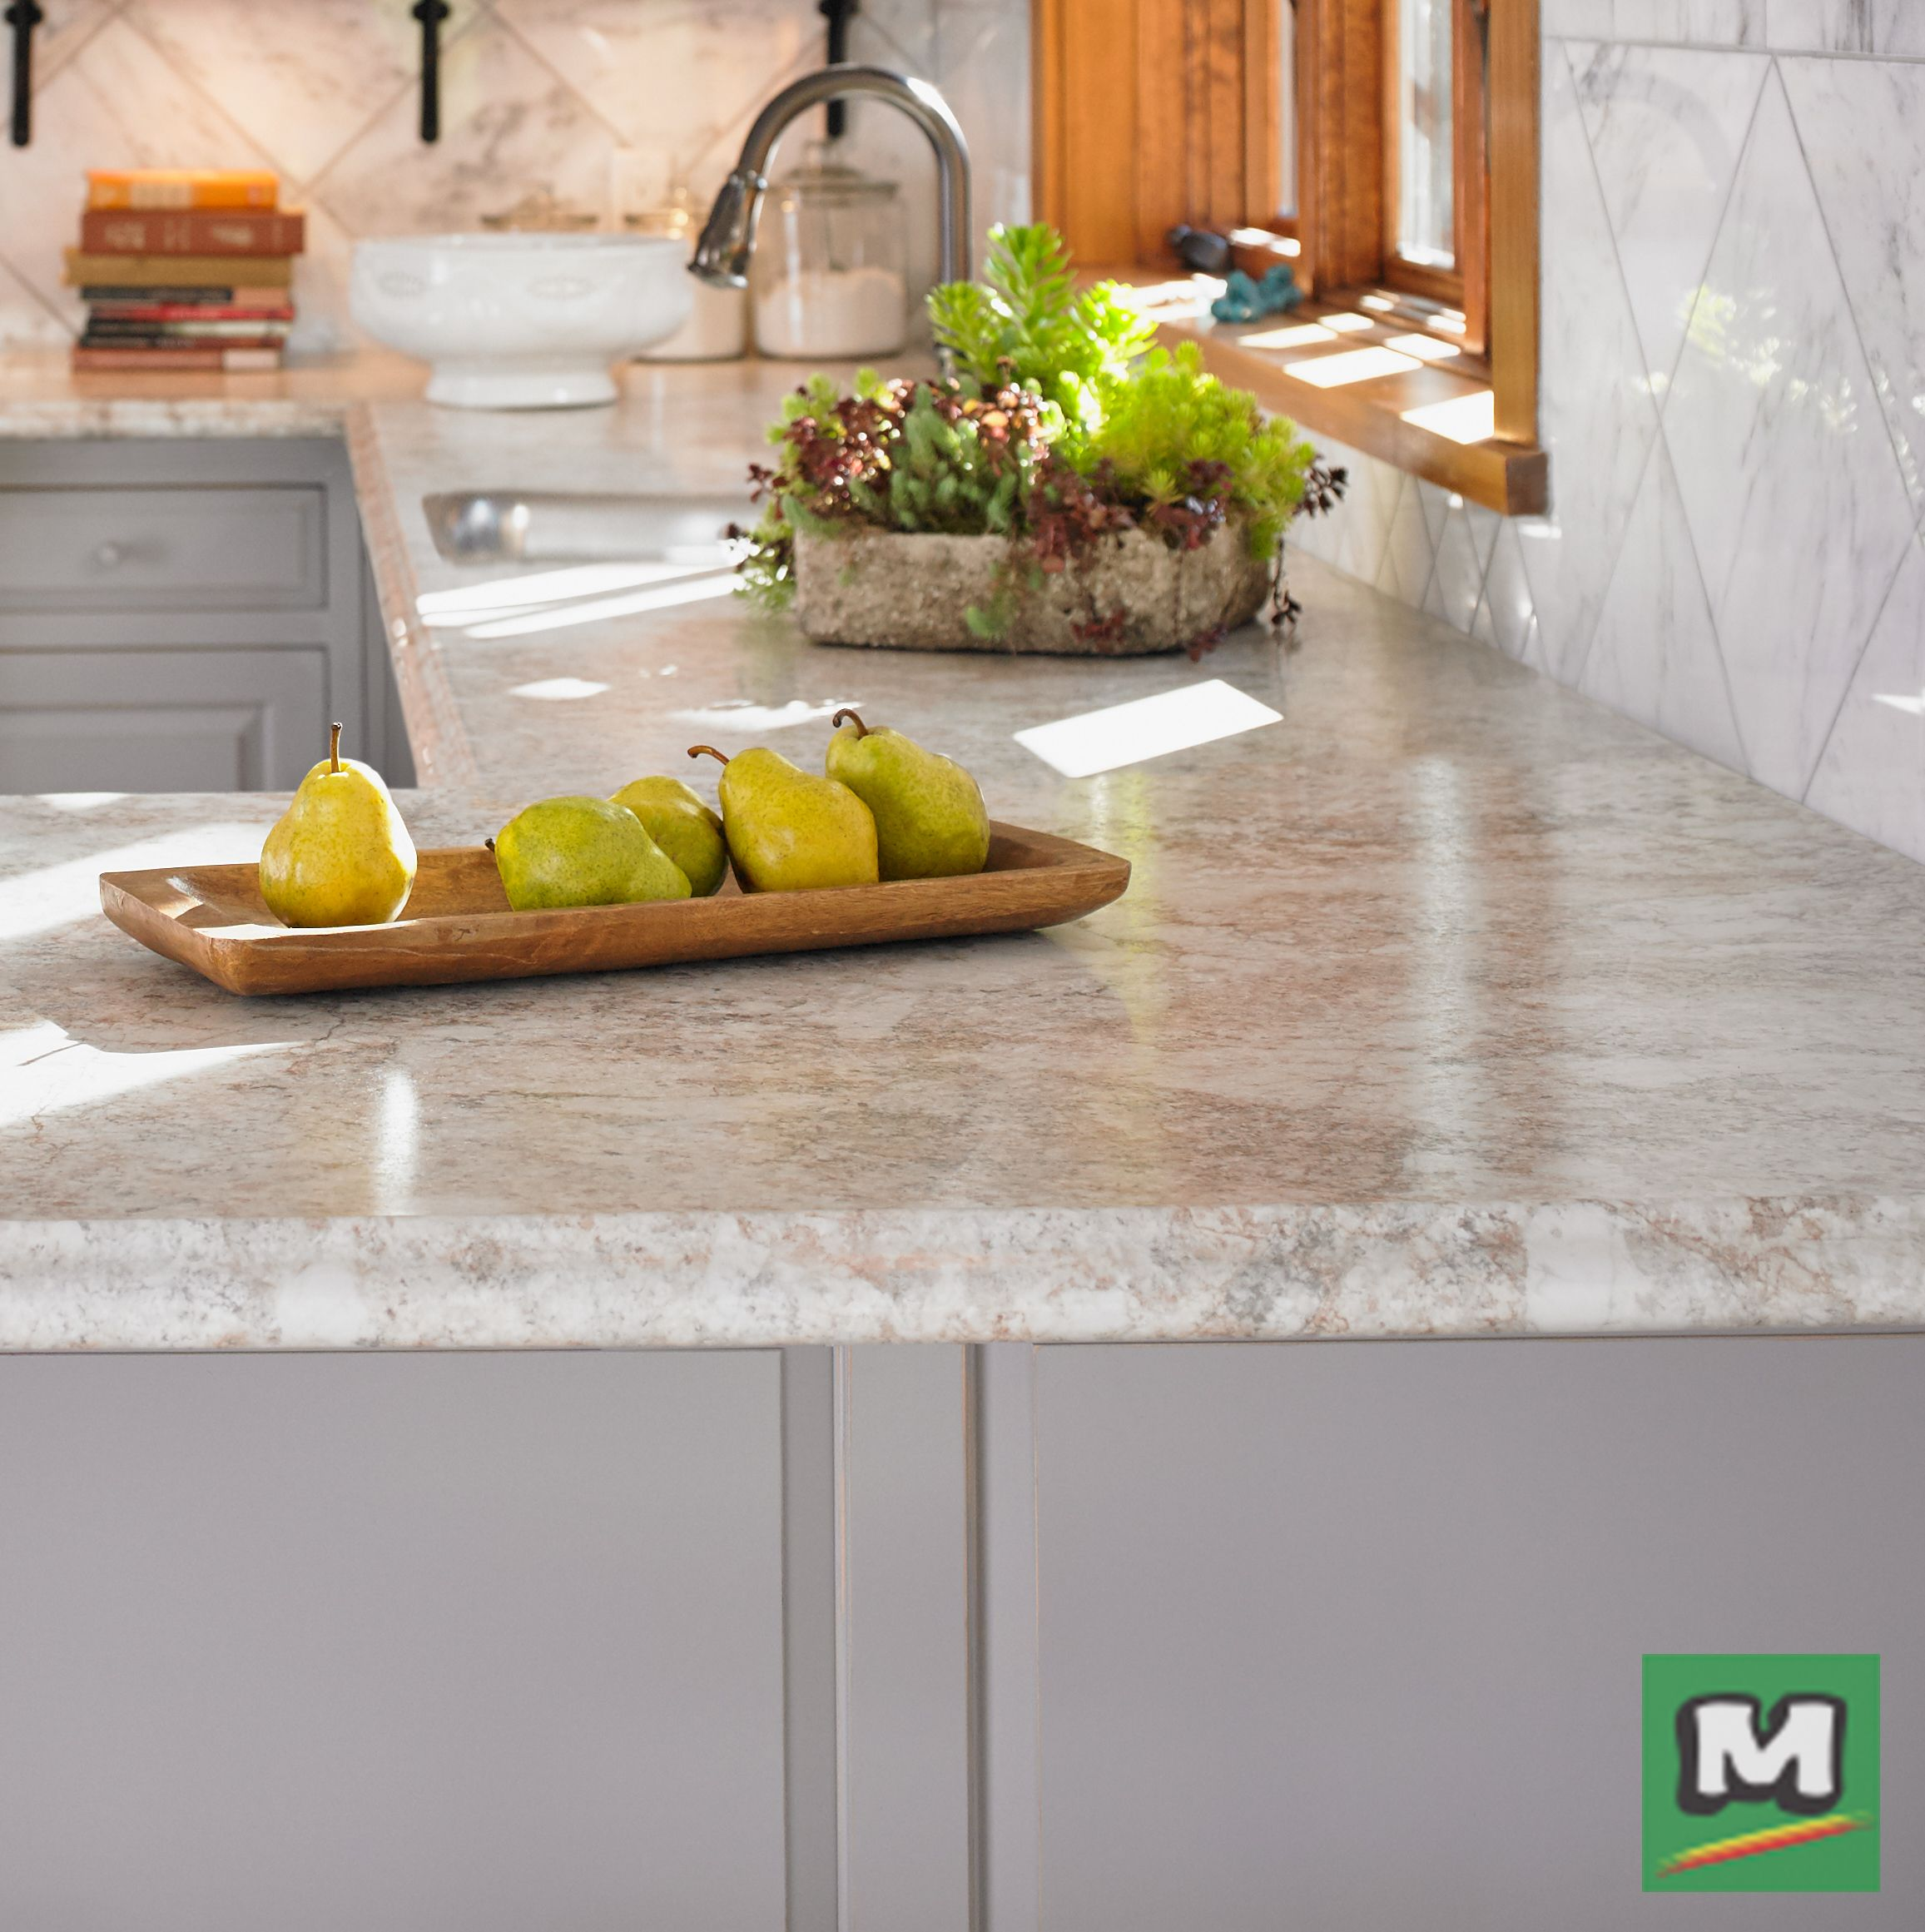 Menards Kitchen Countertops Trailer Cabinets 20 Laminate Countertop Colors Pictures And Ideas On Meta